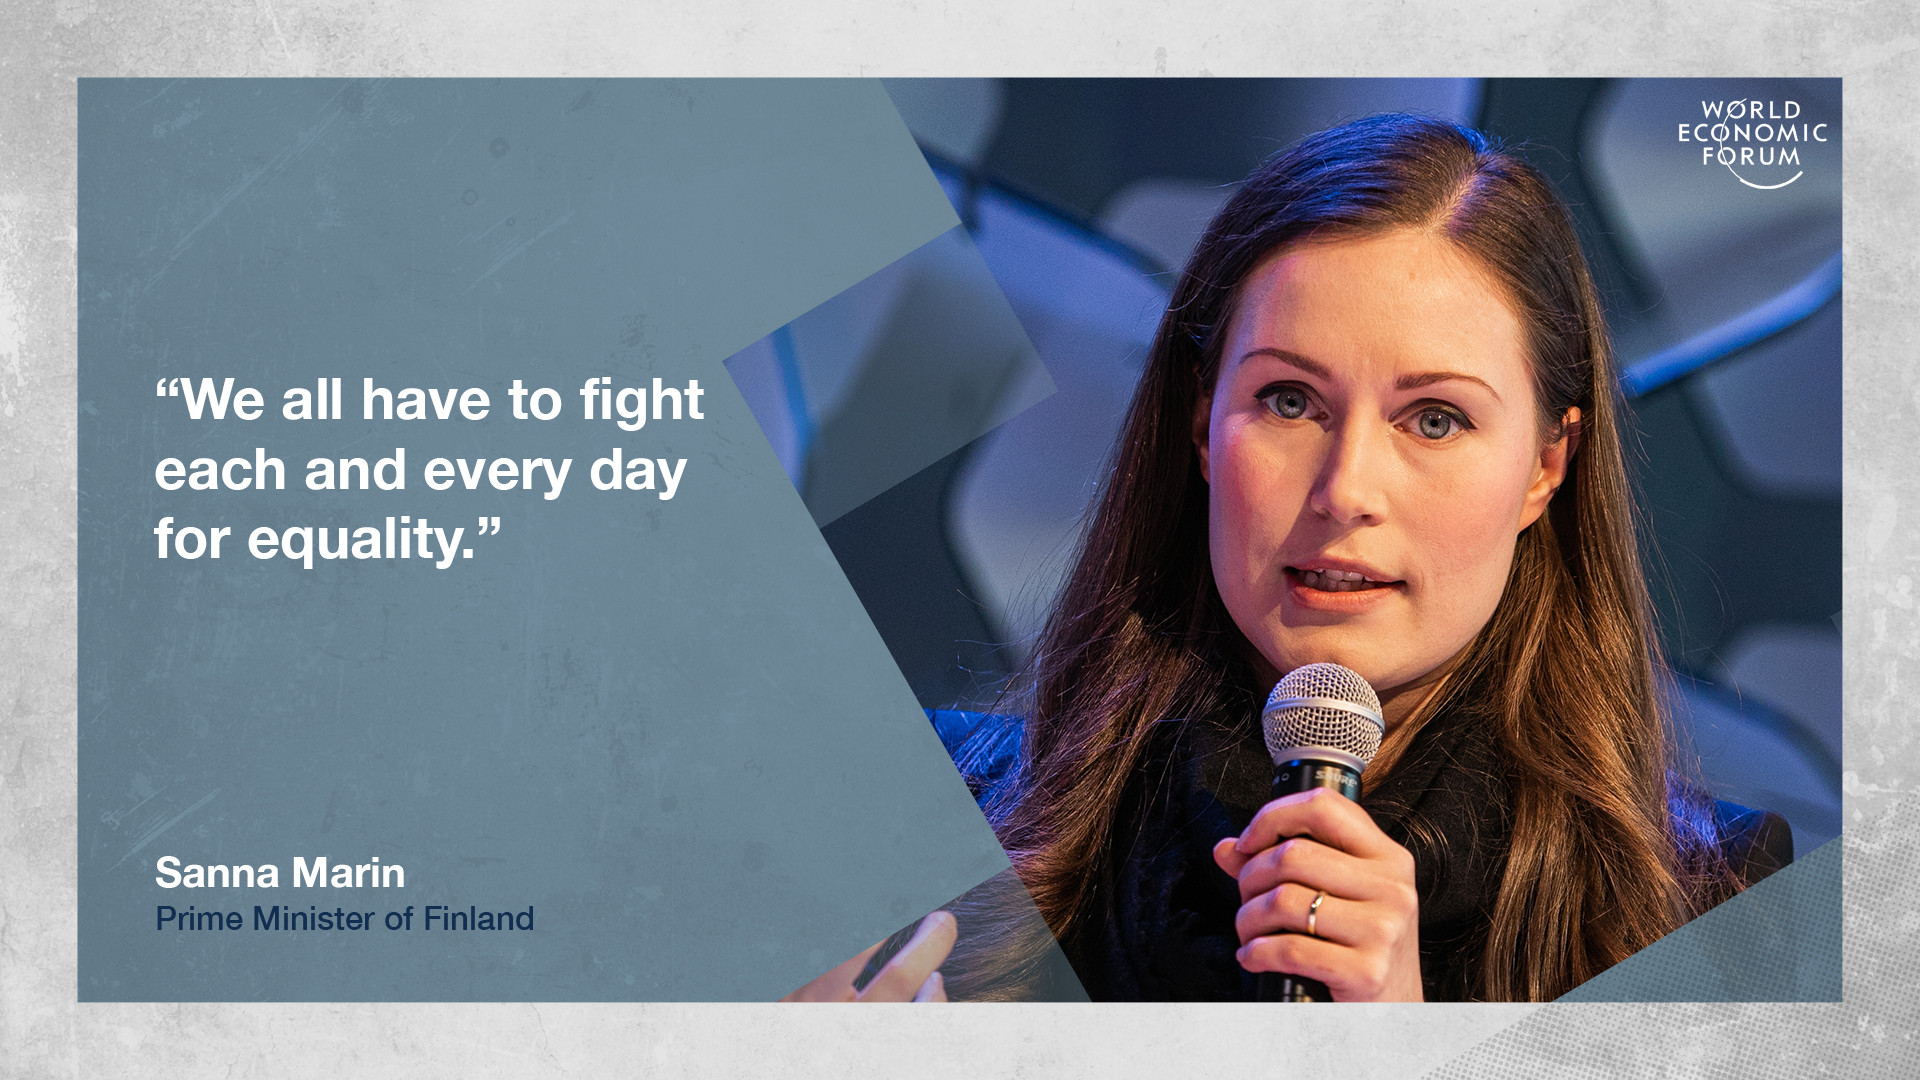 Sanna Marin, Prime Minister of Finland on equality at Davos 2020